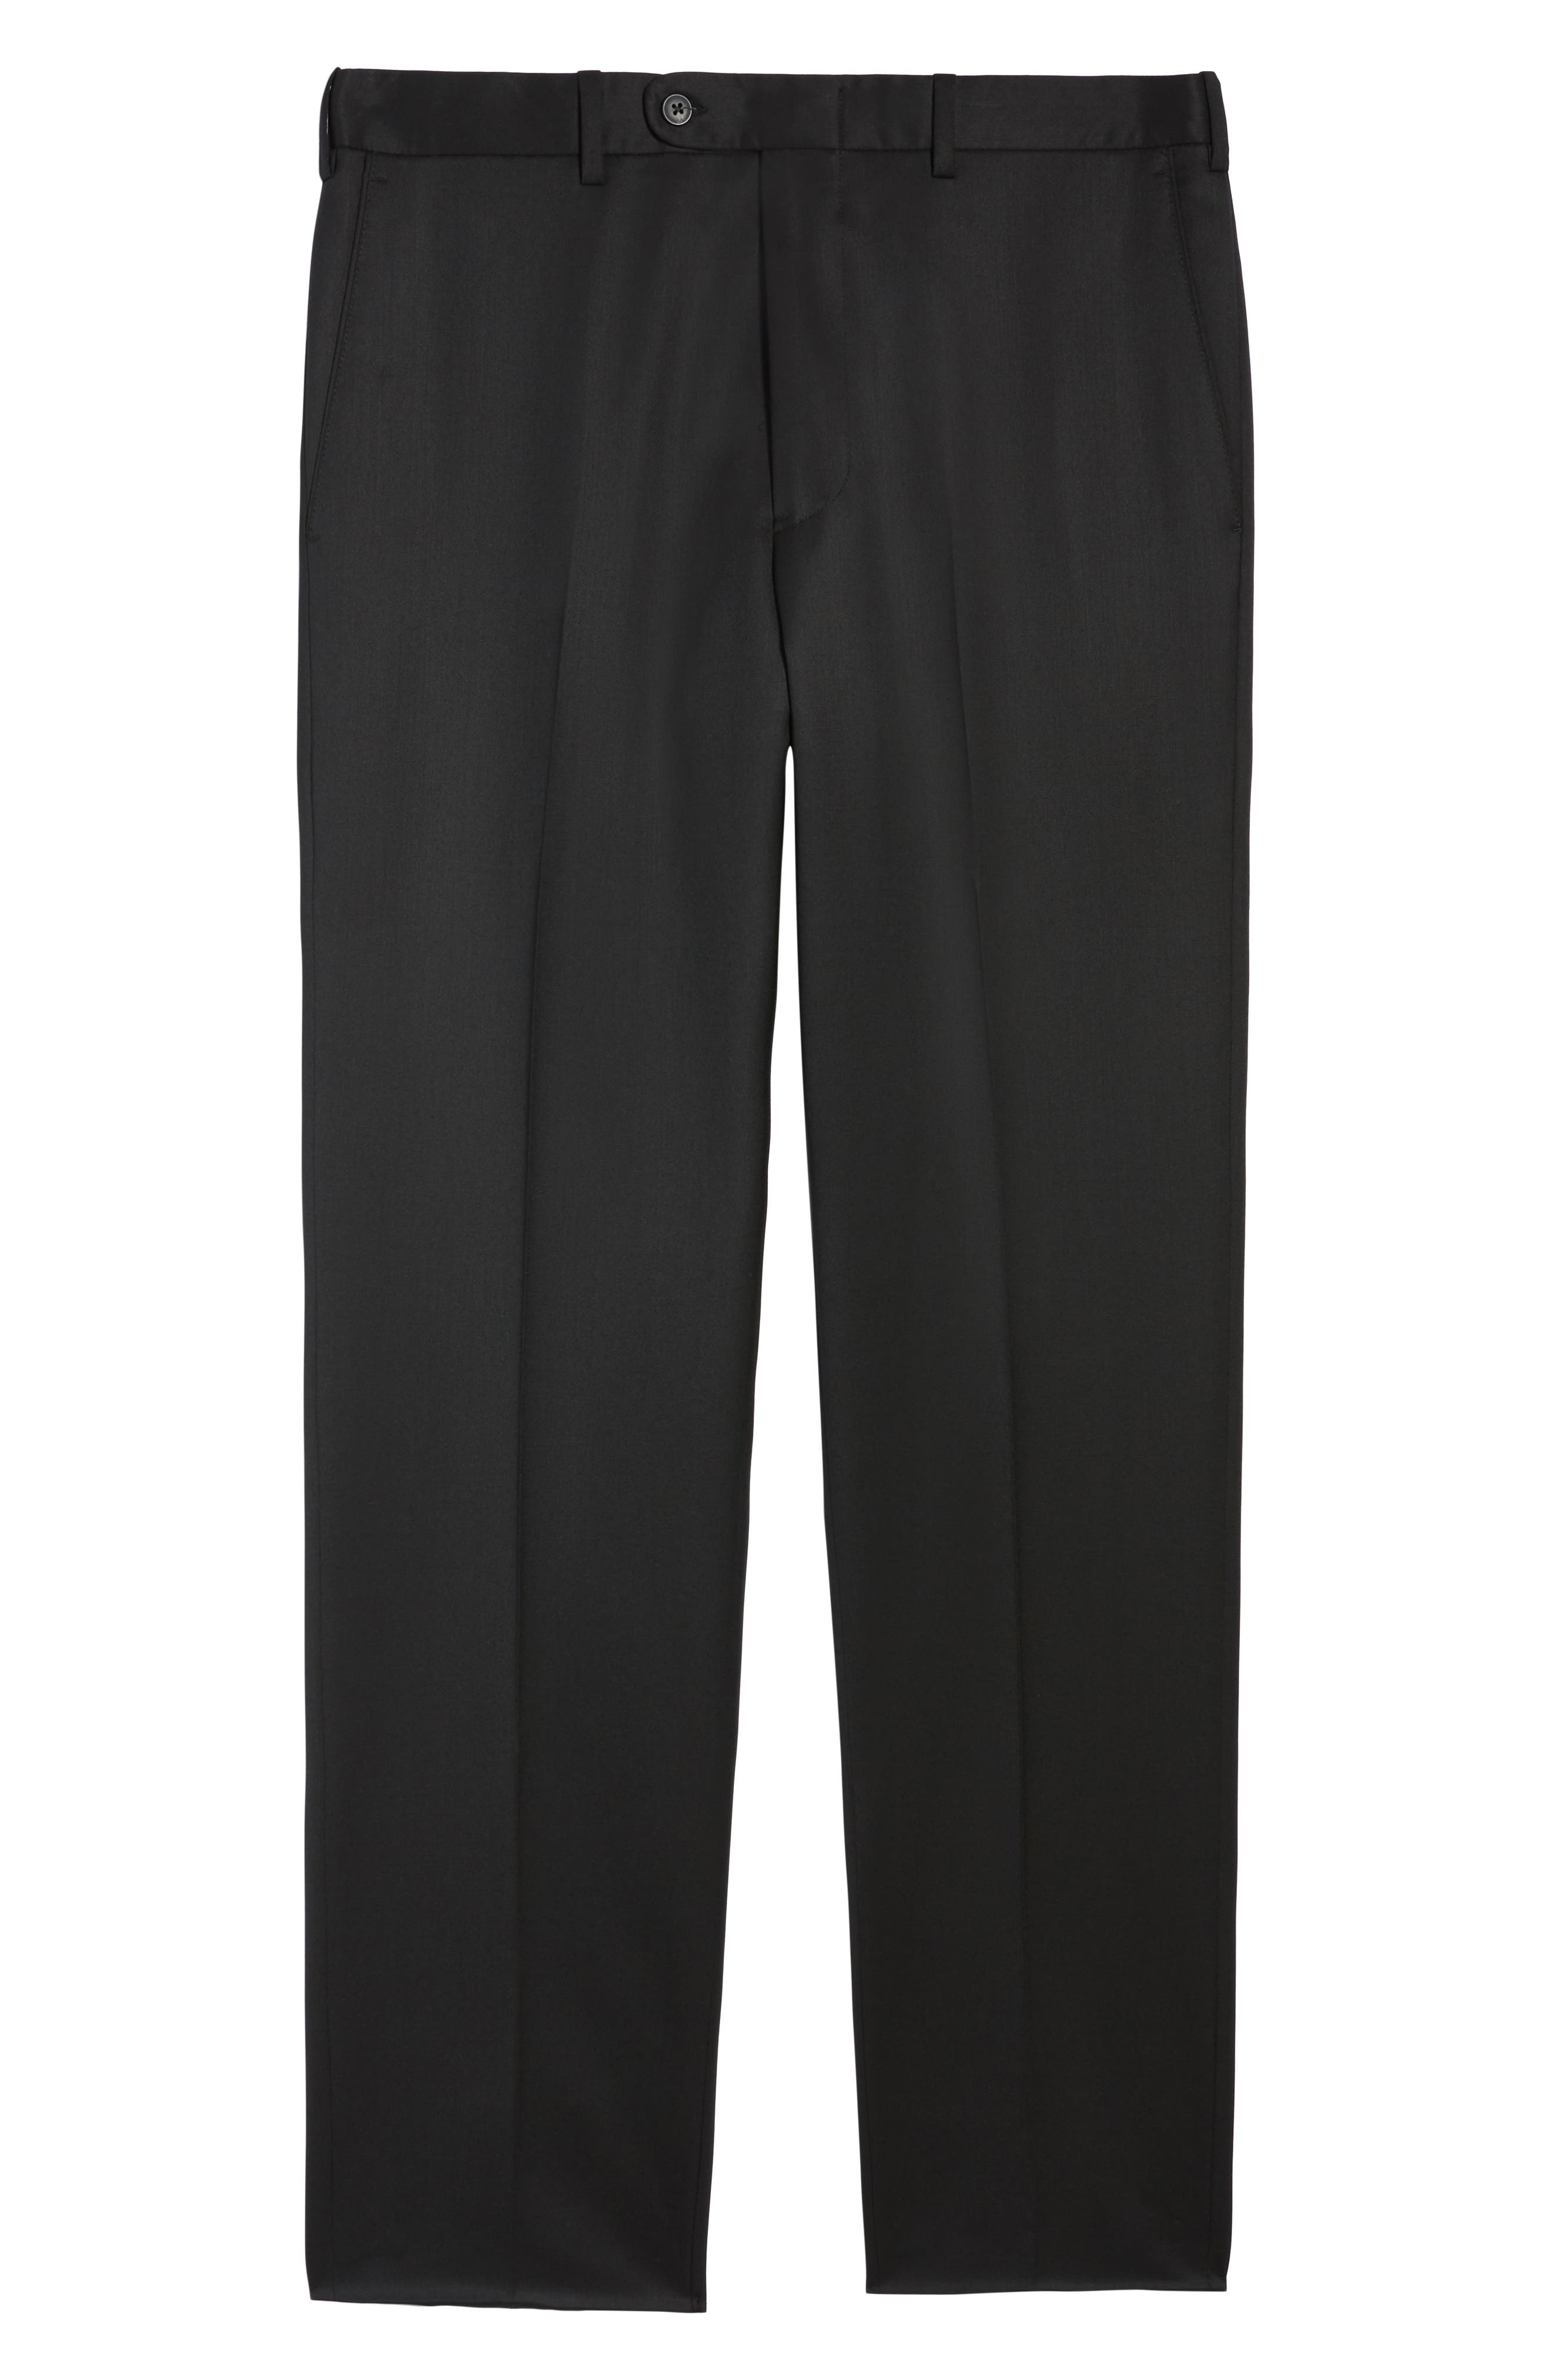 JOHN W. NORDSTROM<SUP>®</SUP>, Torino Traditional Fit Flat Front Solid Trousers, Alternate thumbnail 6, color, BLACK